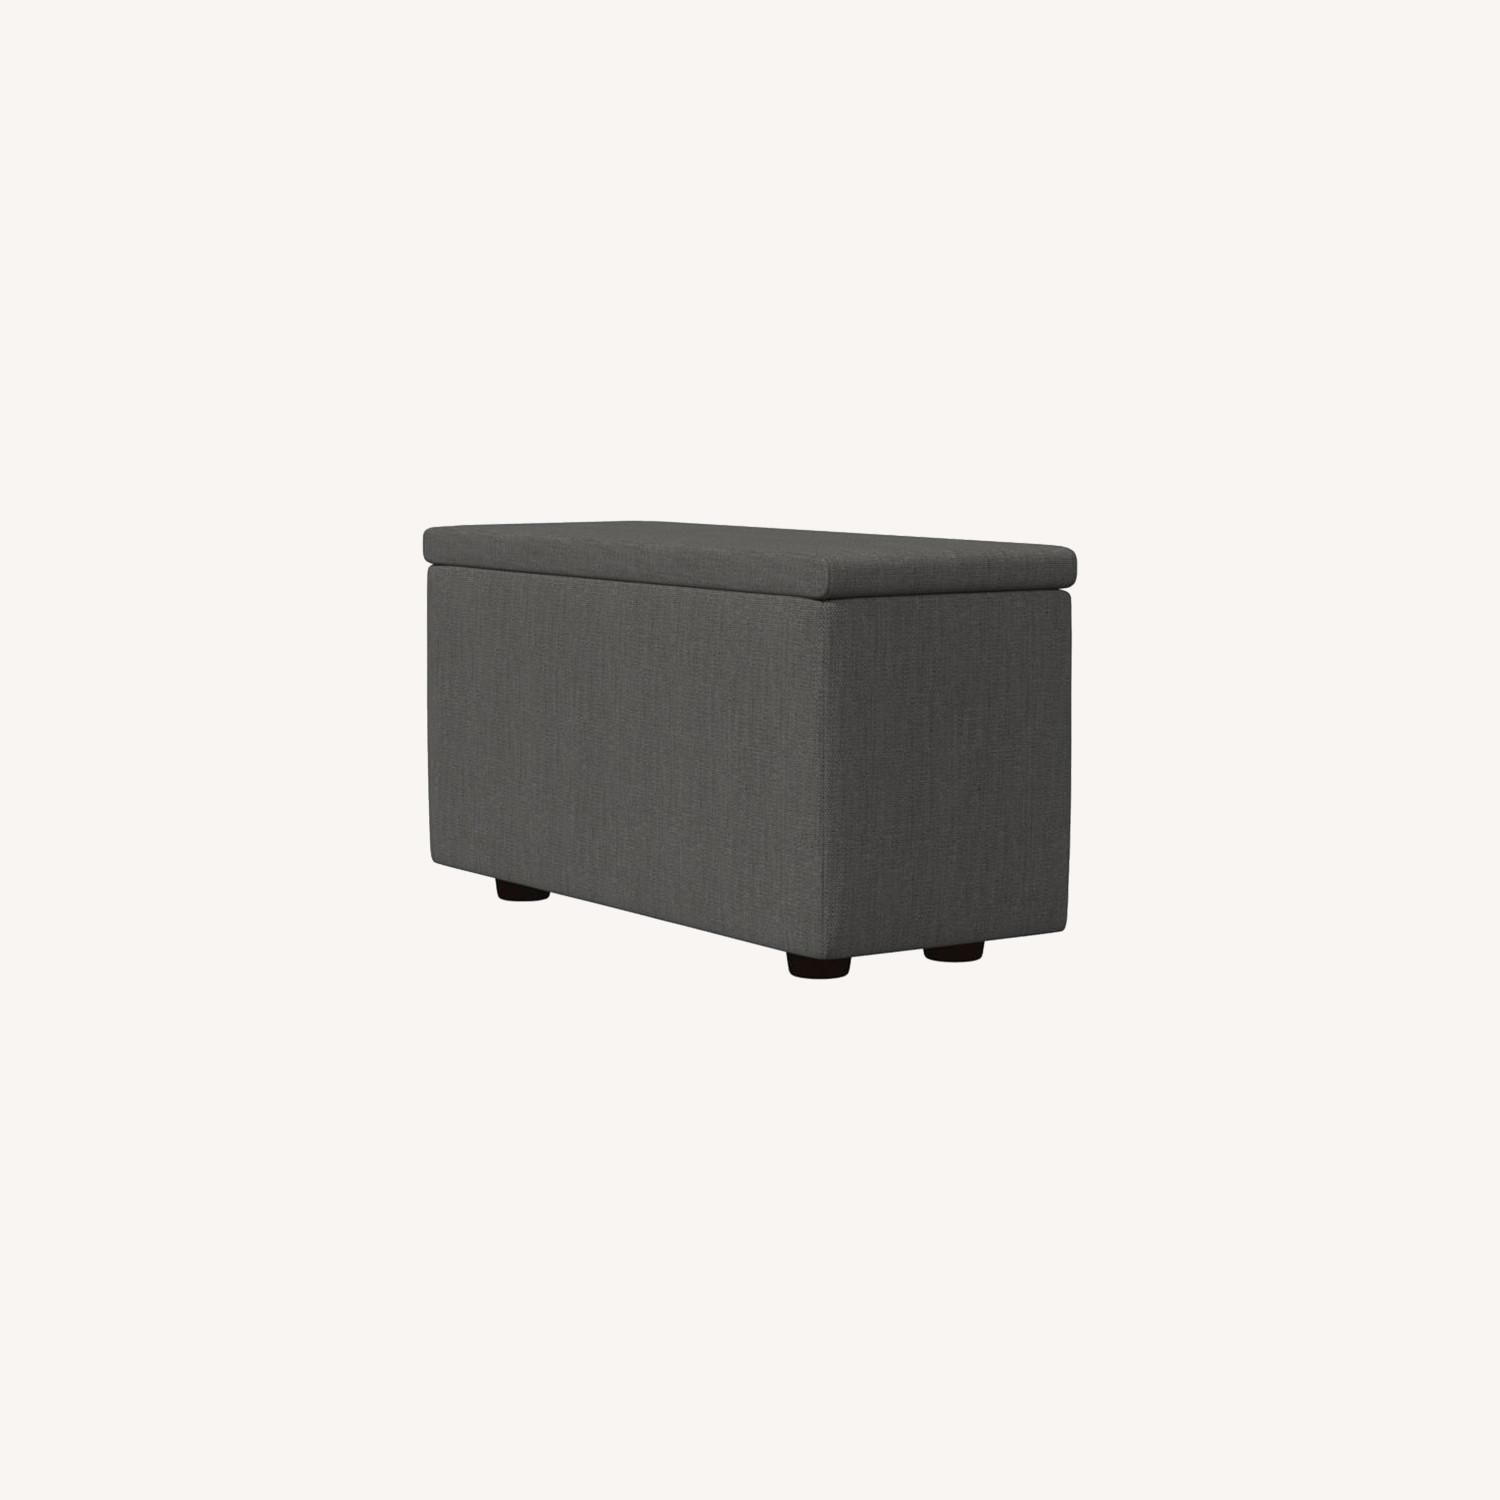 West Elm Enzo Sectional Arm With Storage - image-0